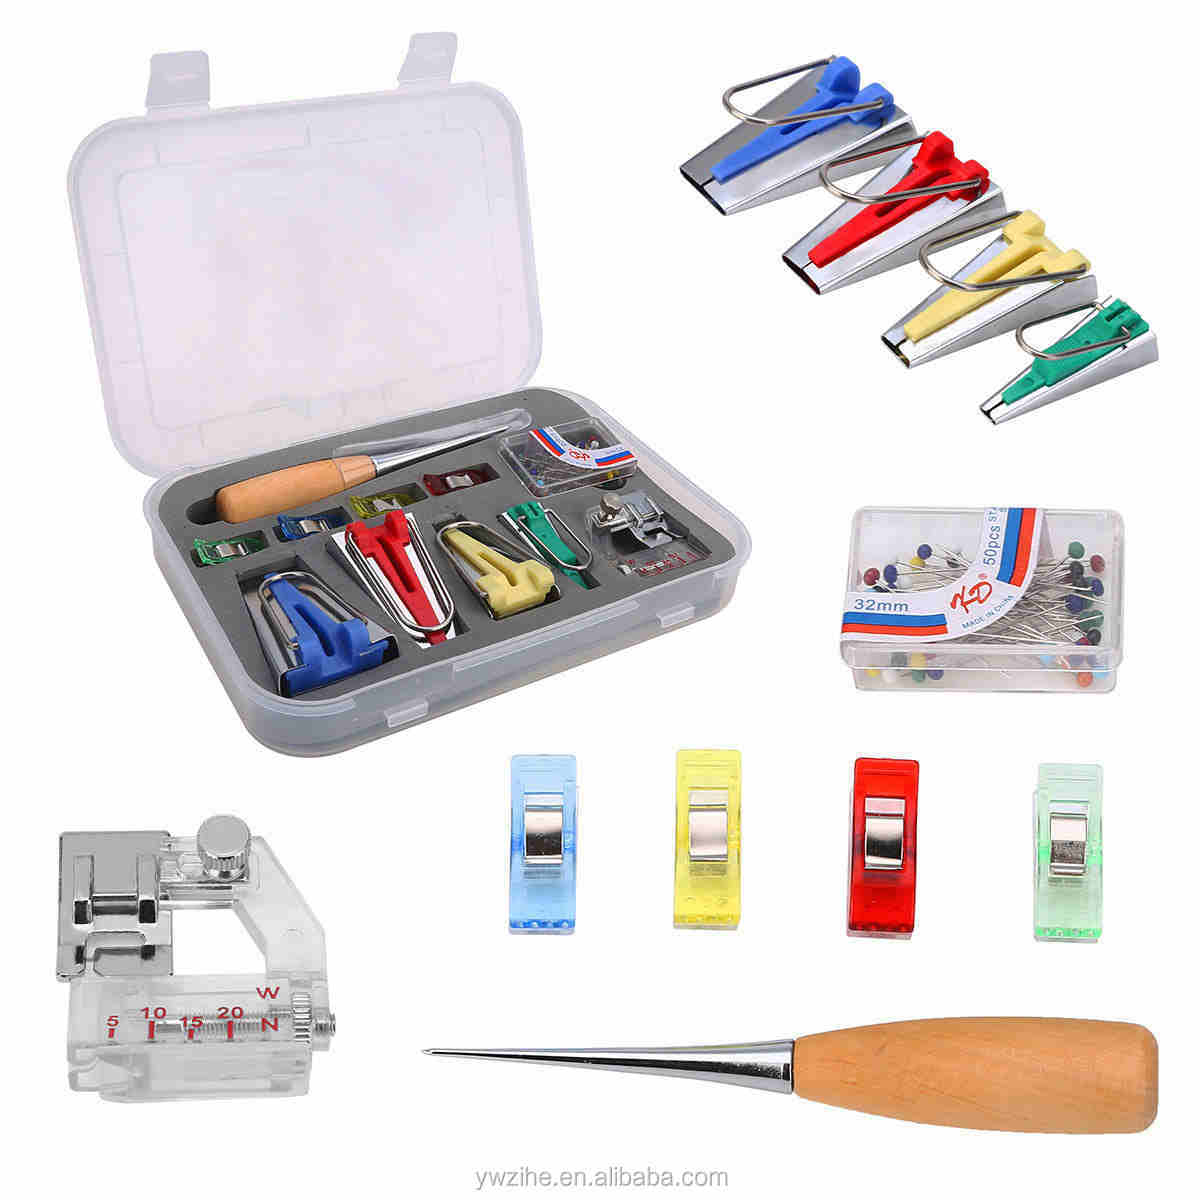 Durable Sewing Machine Tools Practical Sewing Bias Tape Maker Kit Multifunction Household DIY Craft Quilting Tool